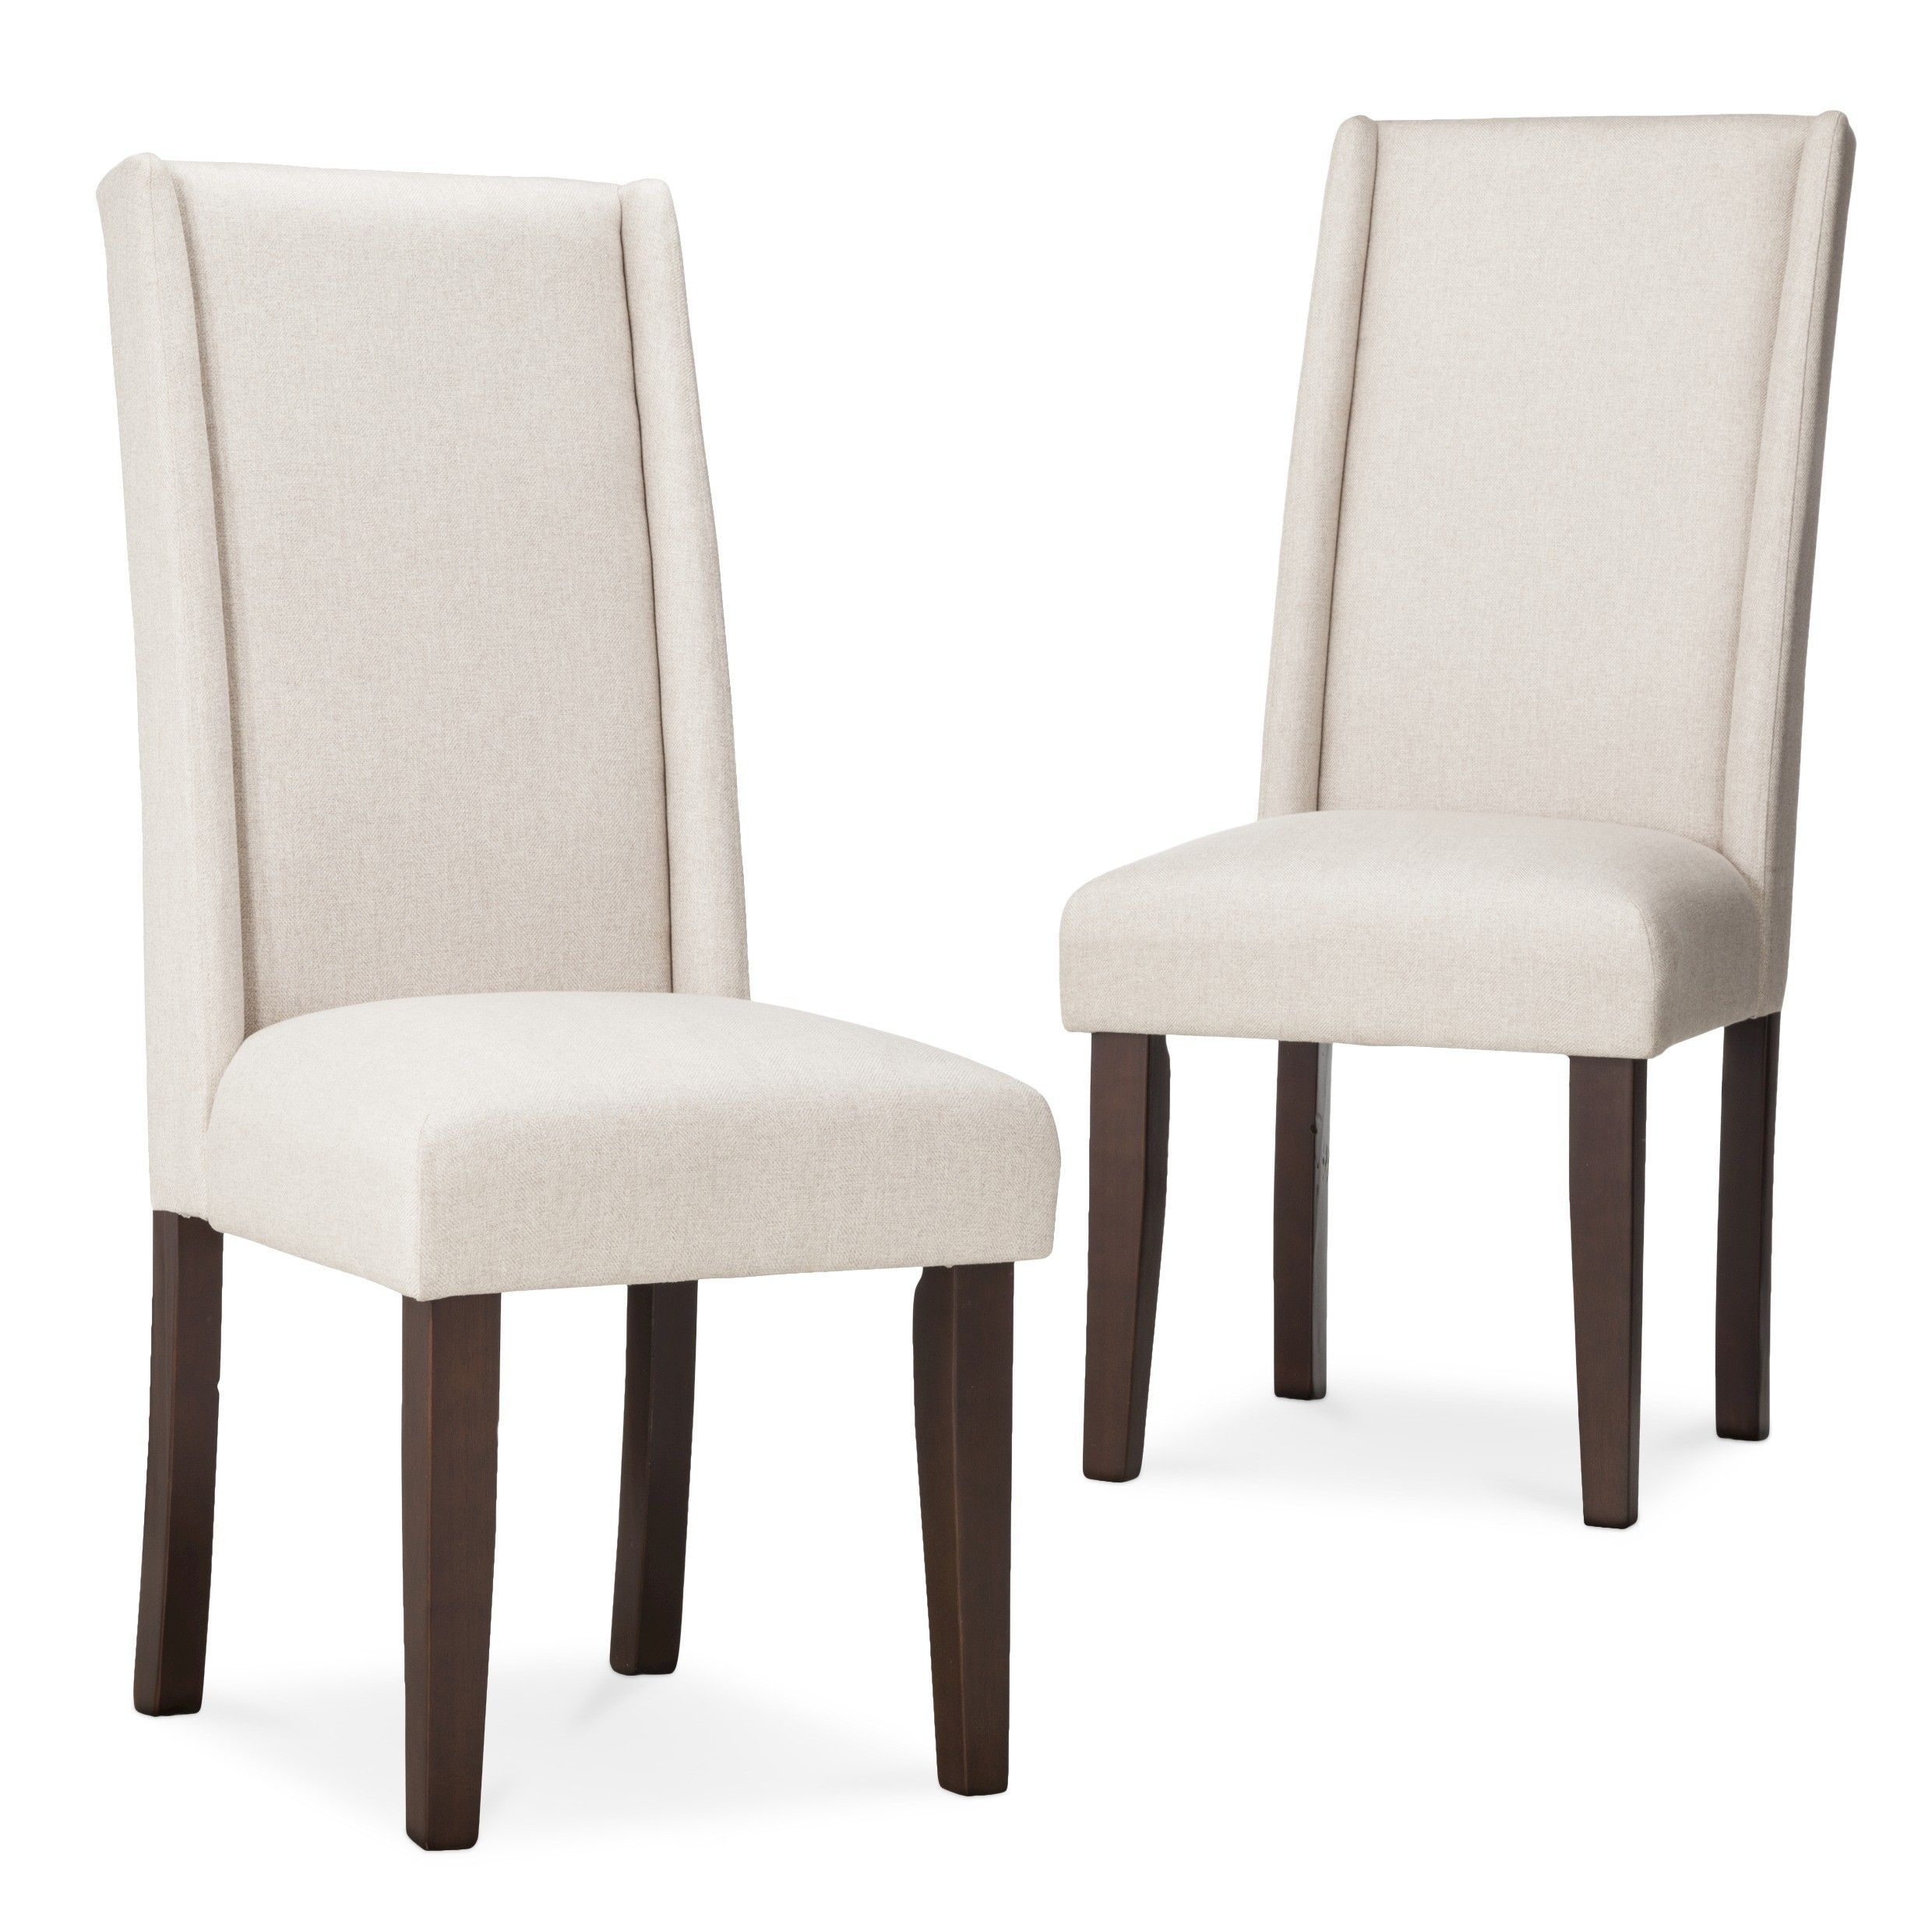 Superb Charlie Modern Wingback Dining Chair Set Of 2 Target Caraccident5 Cool Chair Designs And Ideas Caraccident5Info